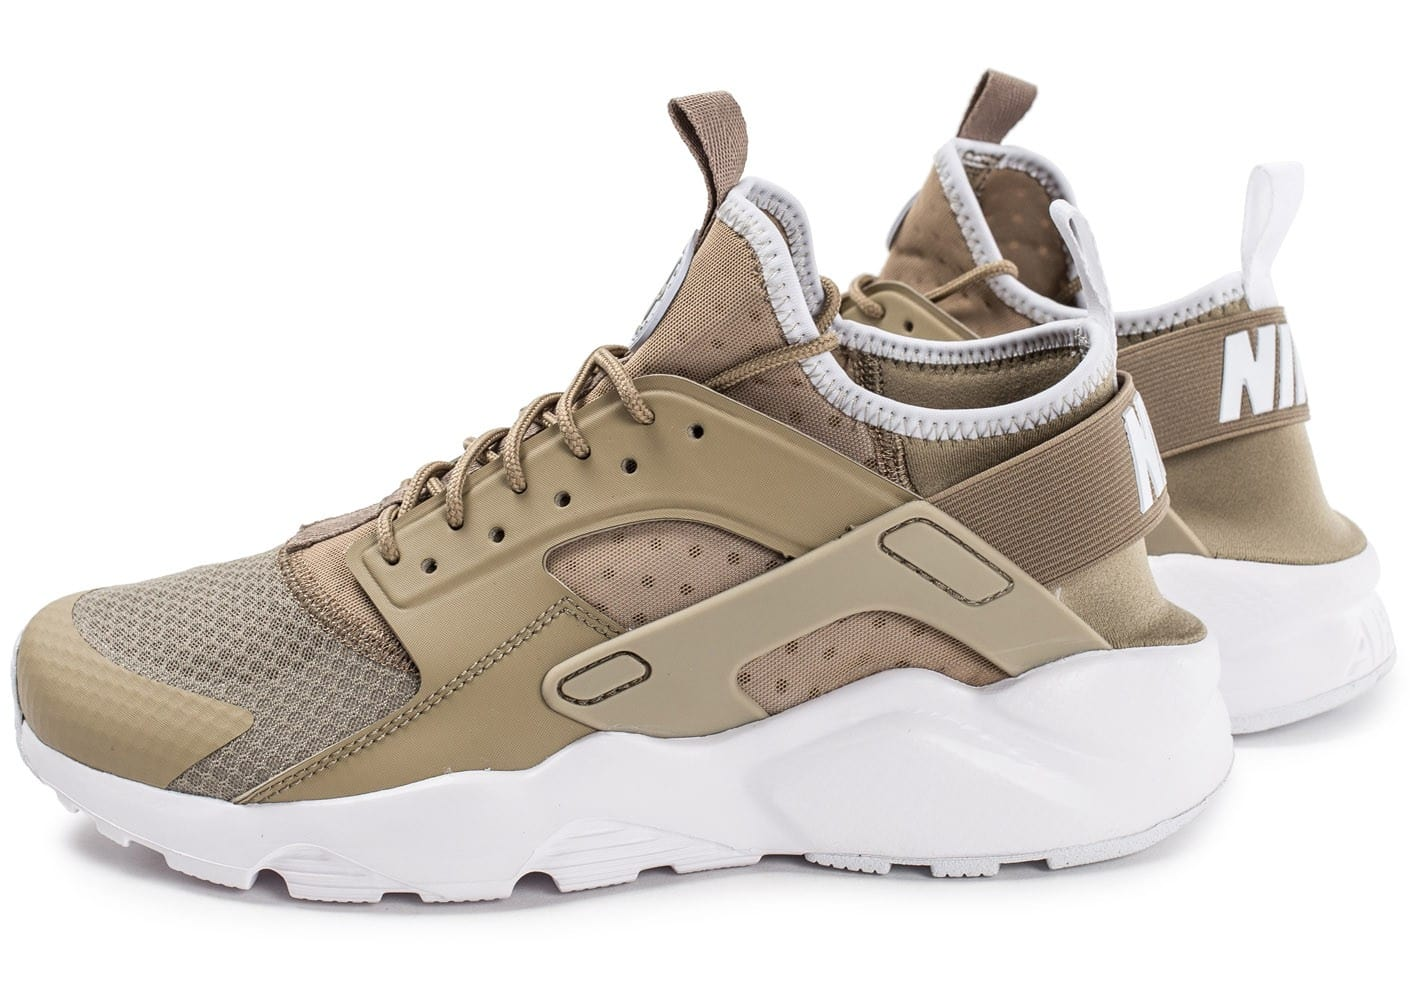 Nike Air Huarache Ultra marron clair Chaussures Baskets